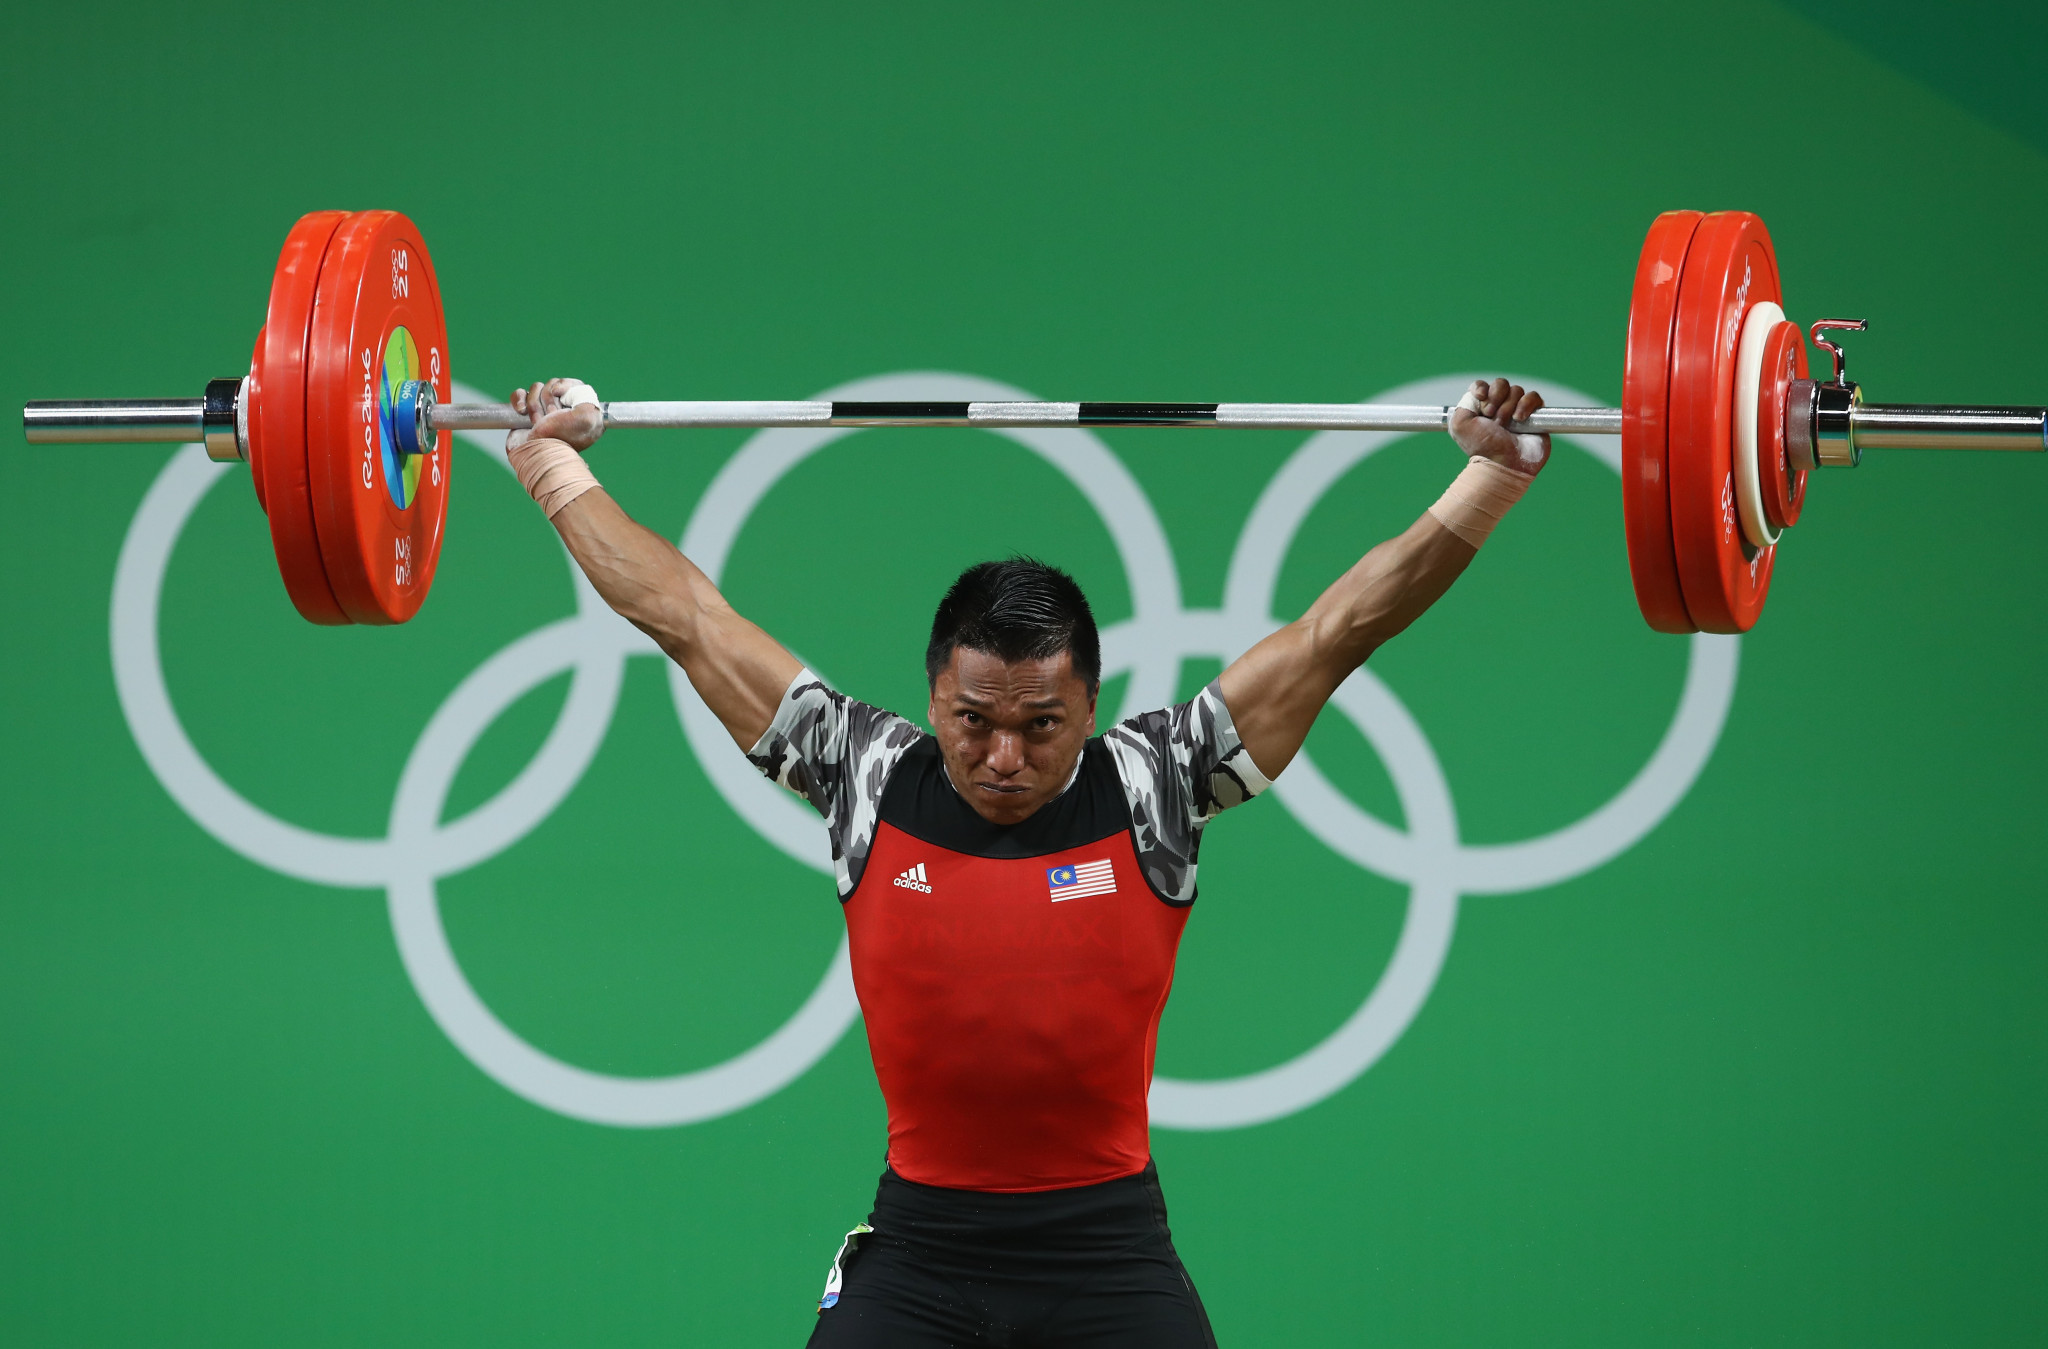 Malaysia are banned from sending weightlifters to the Tokyo 2020 Olympic Games due to multiple doping offences ©Getty Images